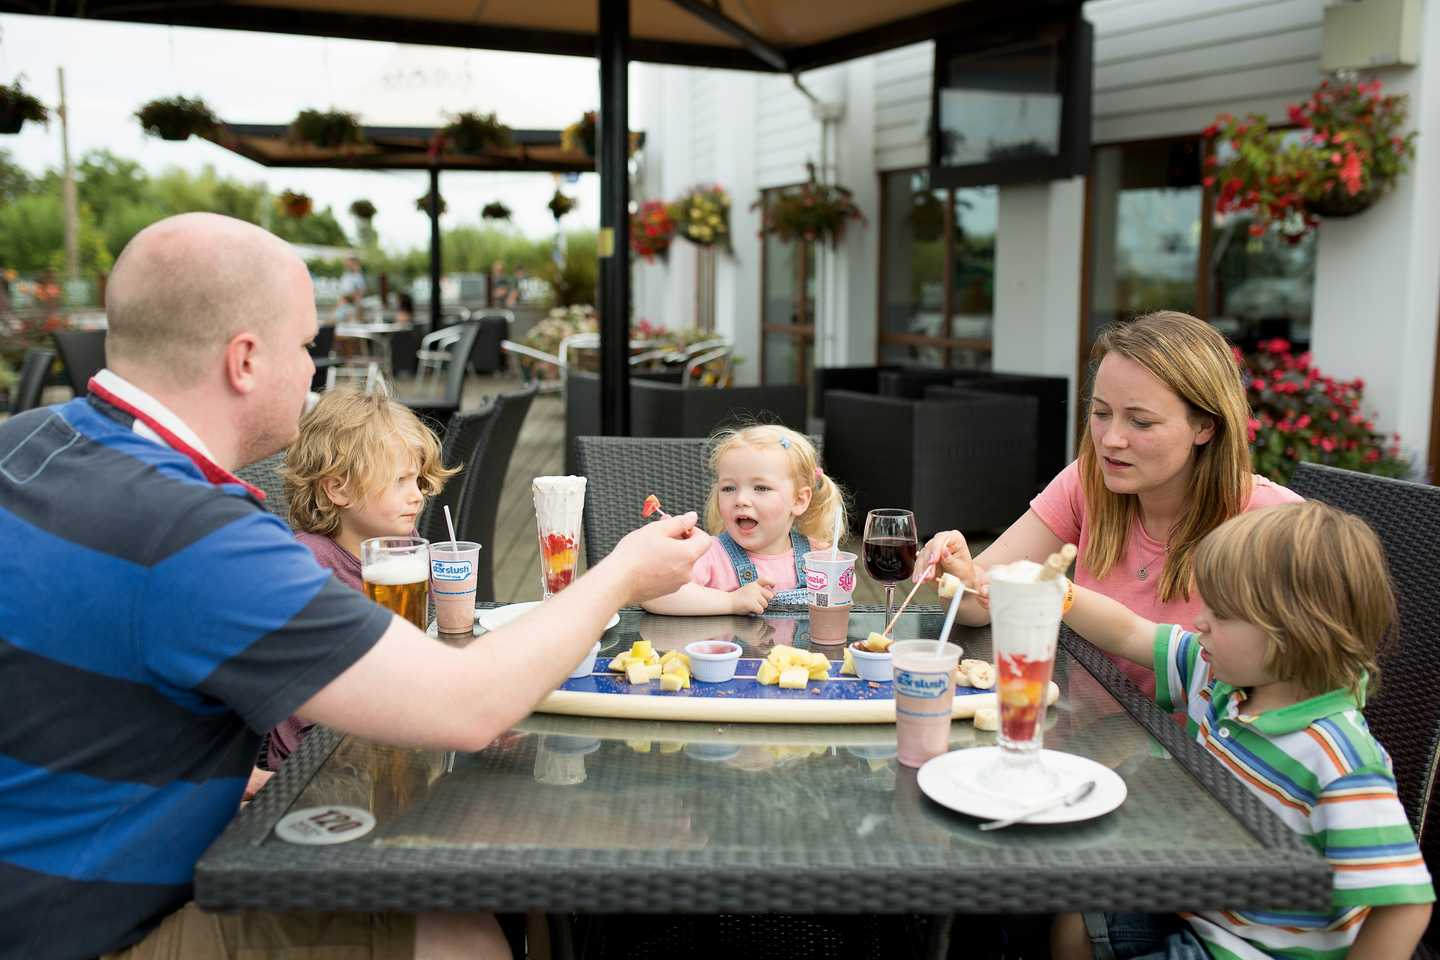 Family enjoying a meal on the Mash and Barrel terrace